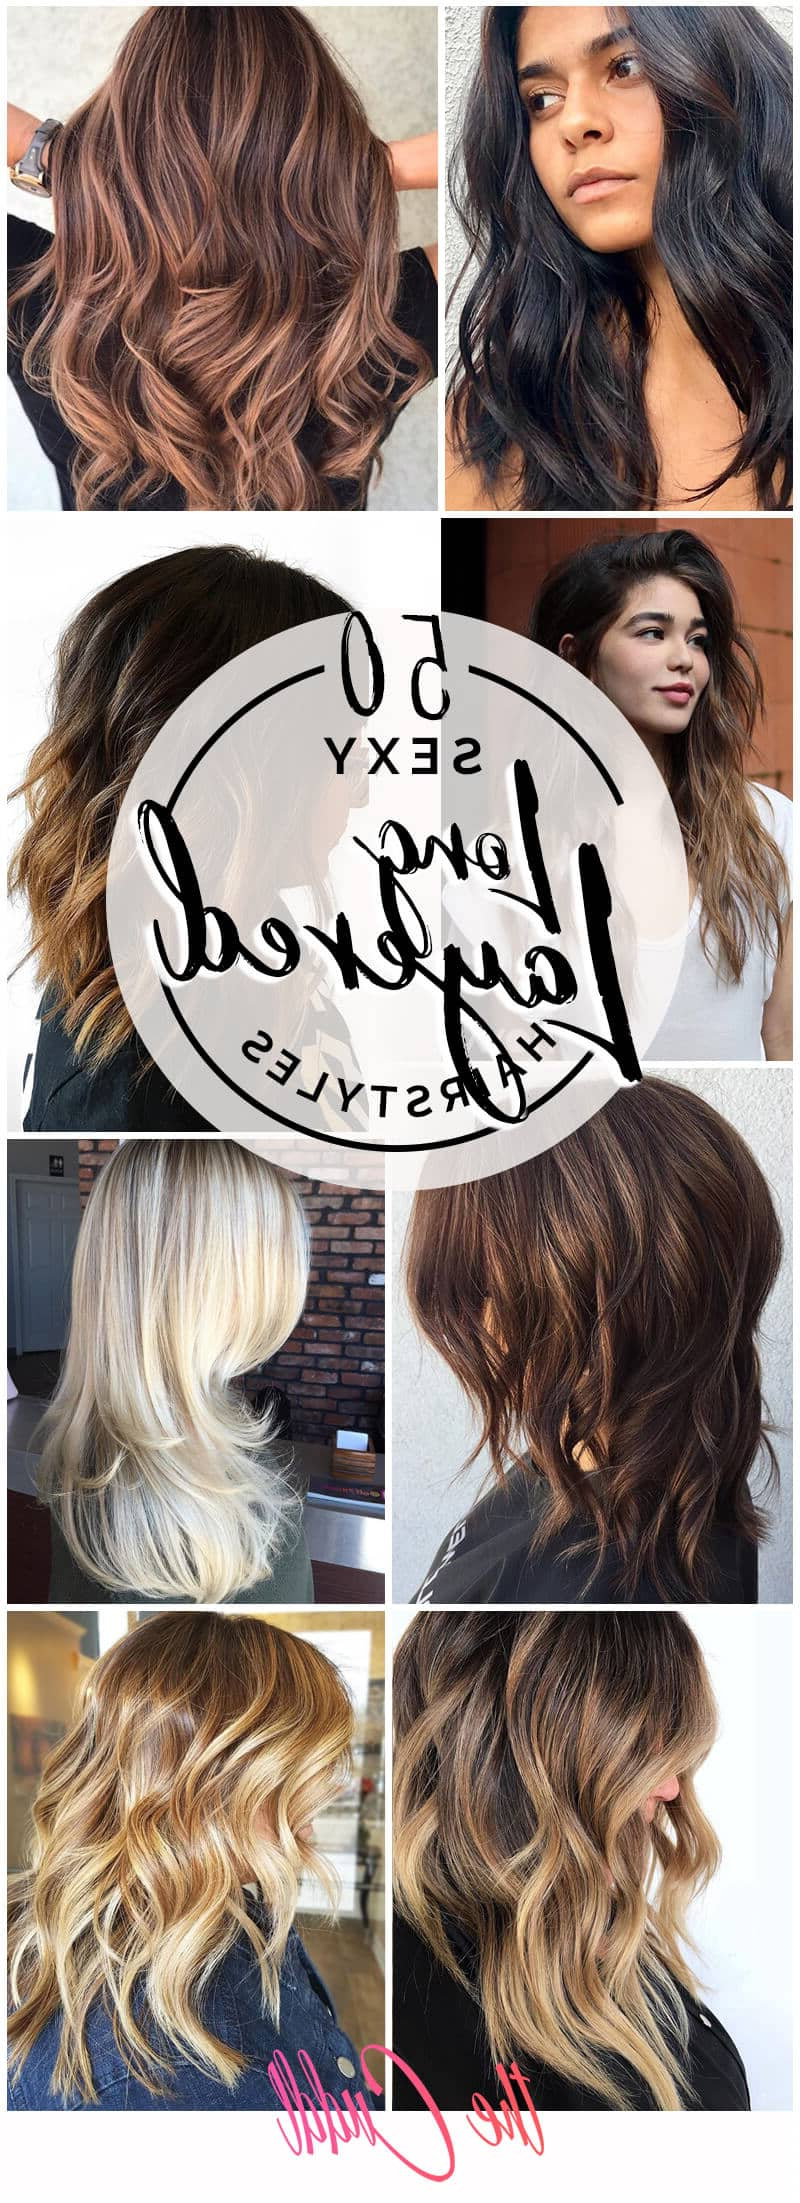 50 Sexy Long Layered Hair Ideas To Create Effortless Style In 2019 Throughout Favorite Full And Bouncy Long Layers Hairstyles (View 12 of 20)